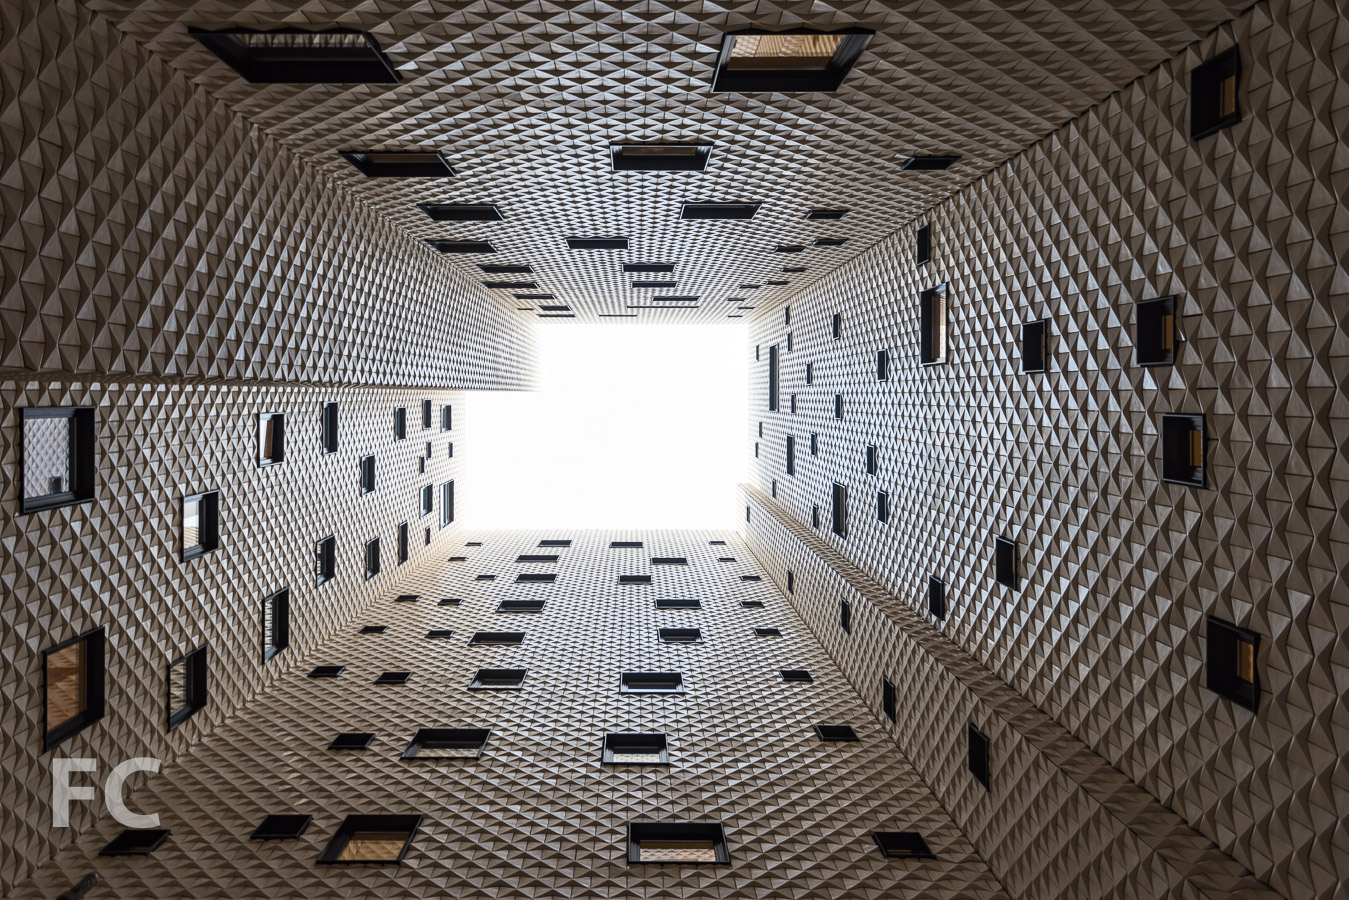 Looking up at the courtyard atrium.